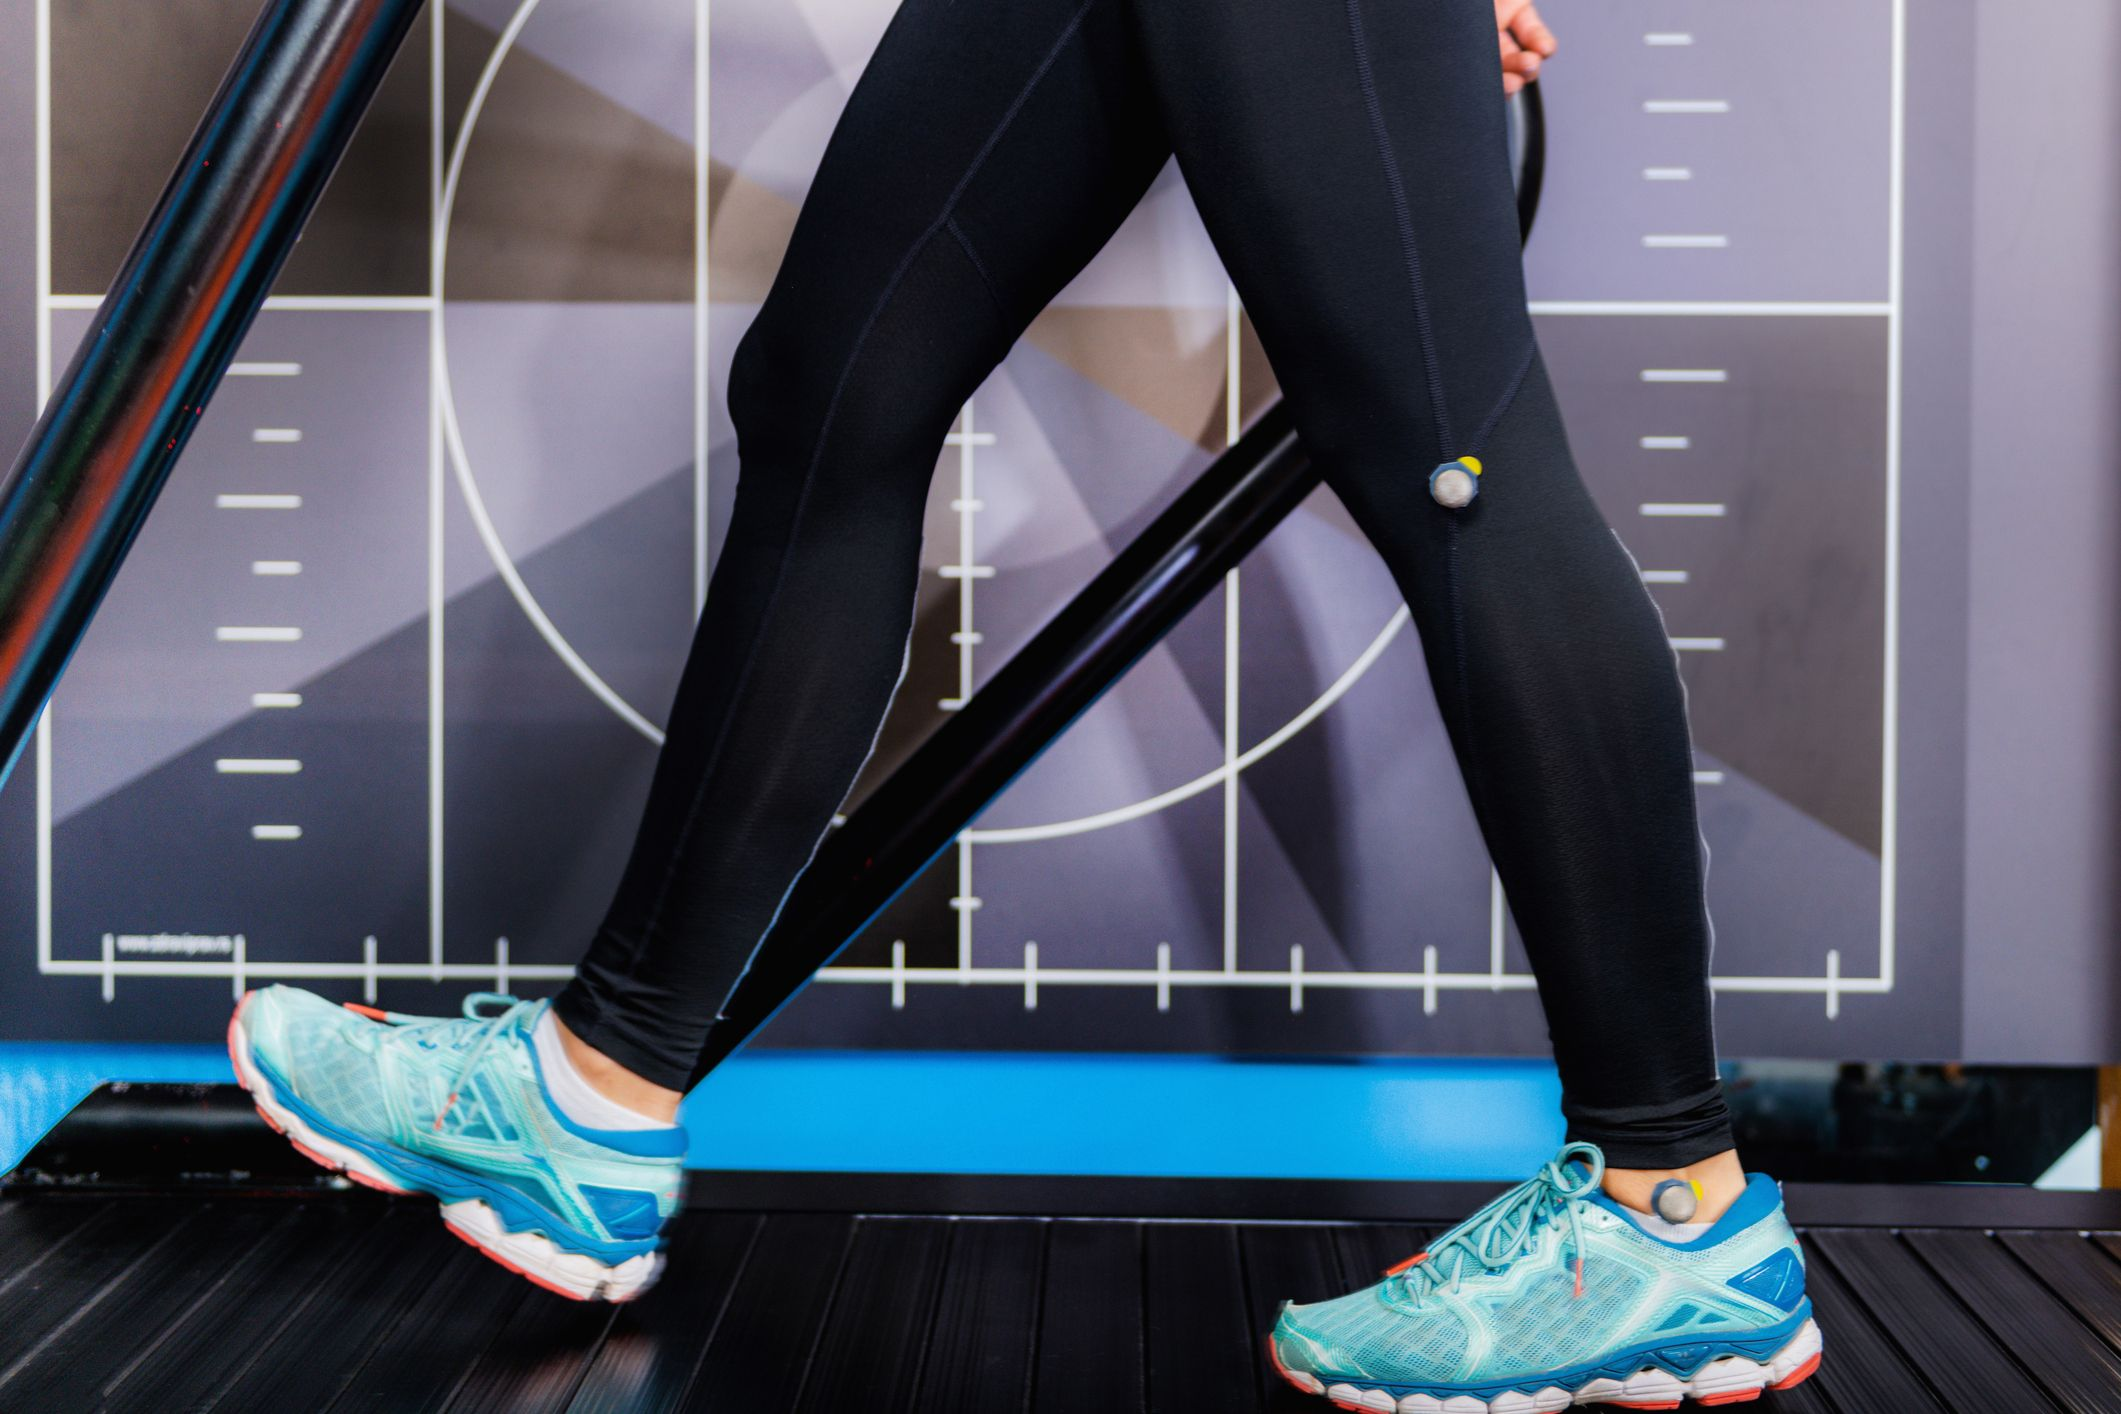 A Gait Analysis Could Help You Become a Better, More Efficient Runner